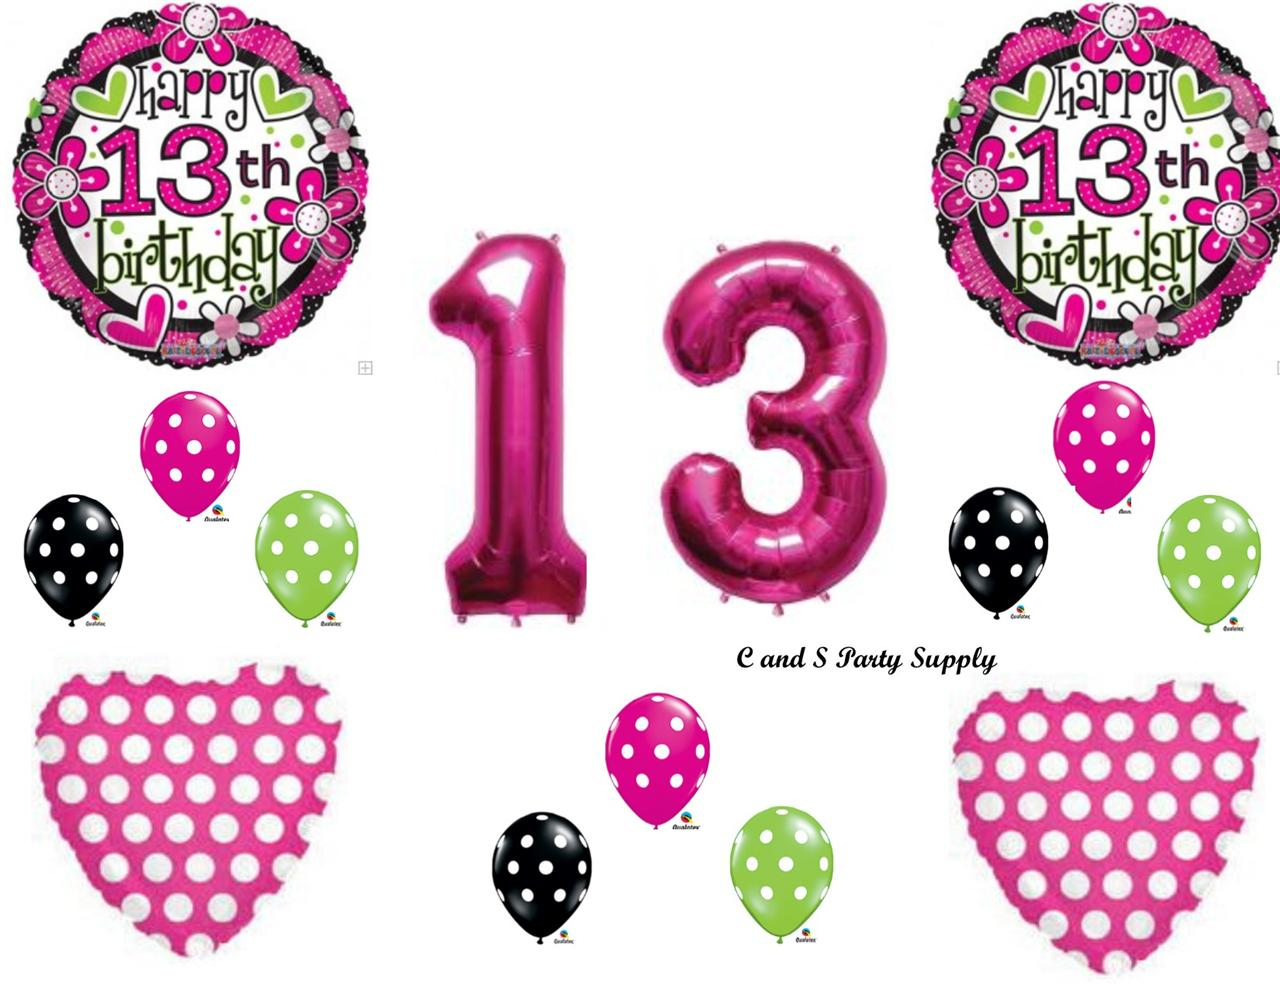 13th birthday decorations on shoppinder for 13th birthday party decoration ideas